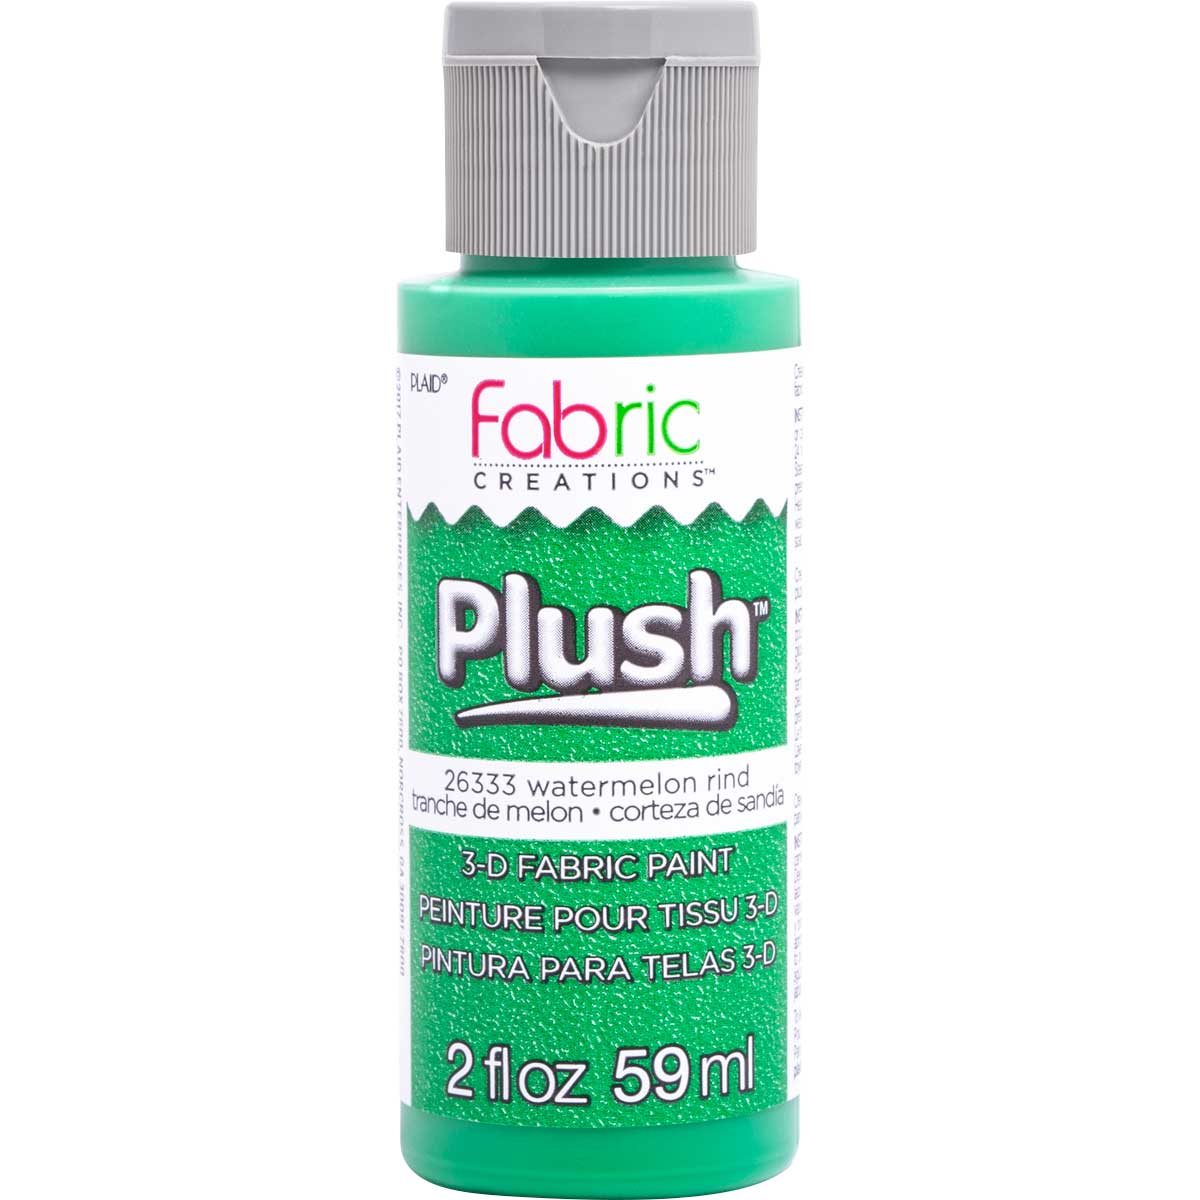 Fabric Creations™ Plush™ 3-D Fabric Paints - Watermelon Rind, 2 oz.